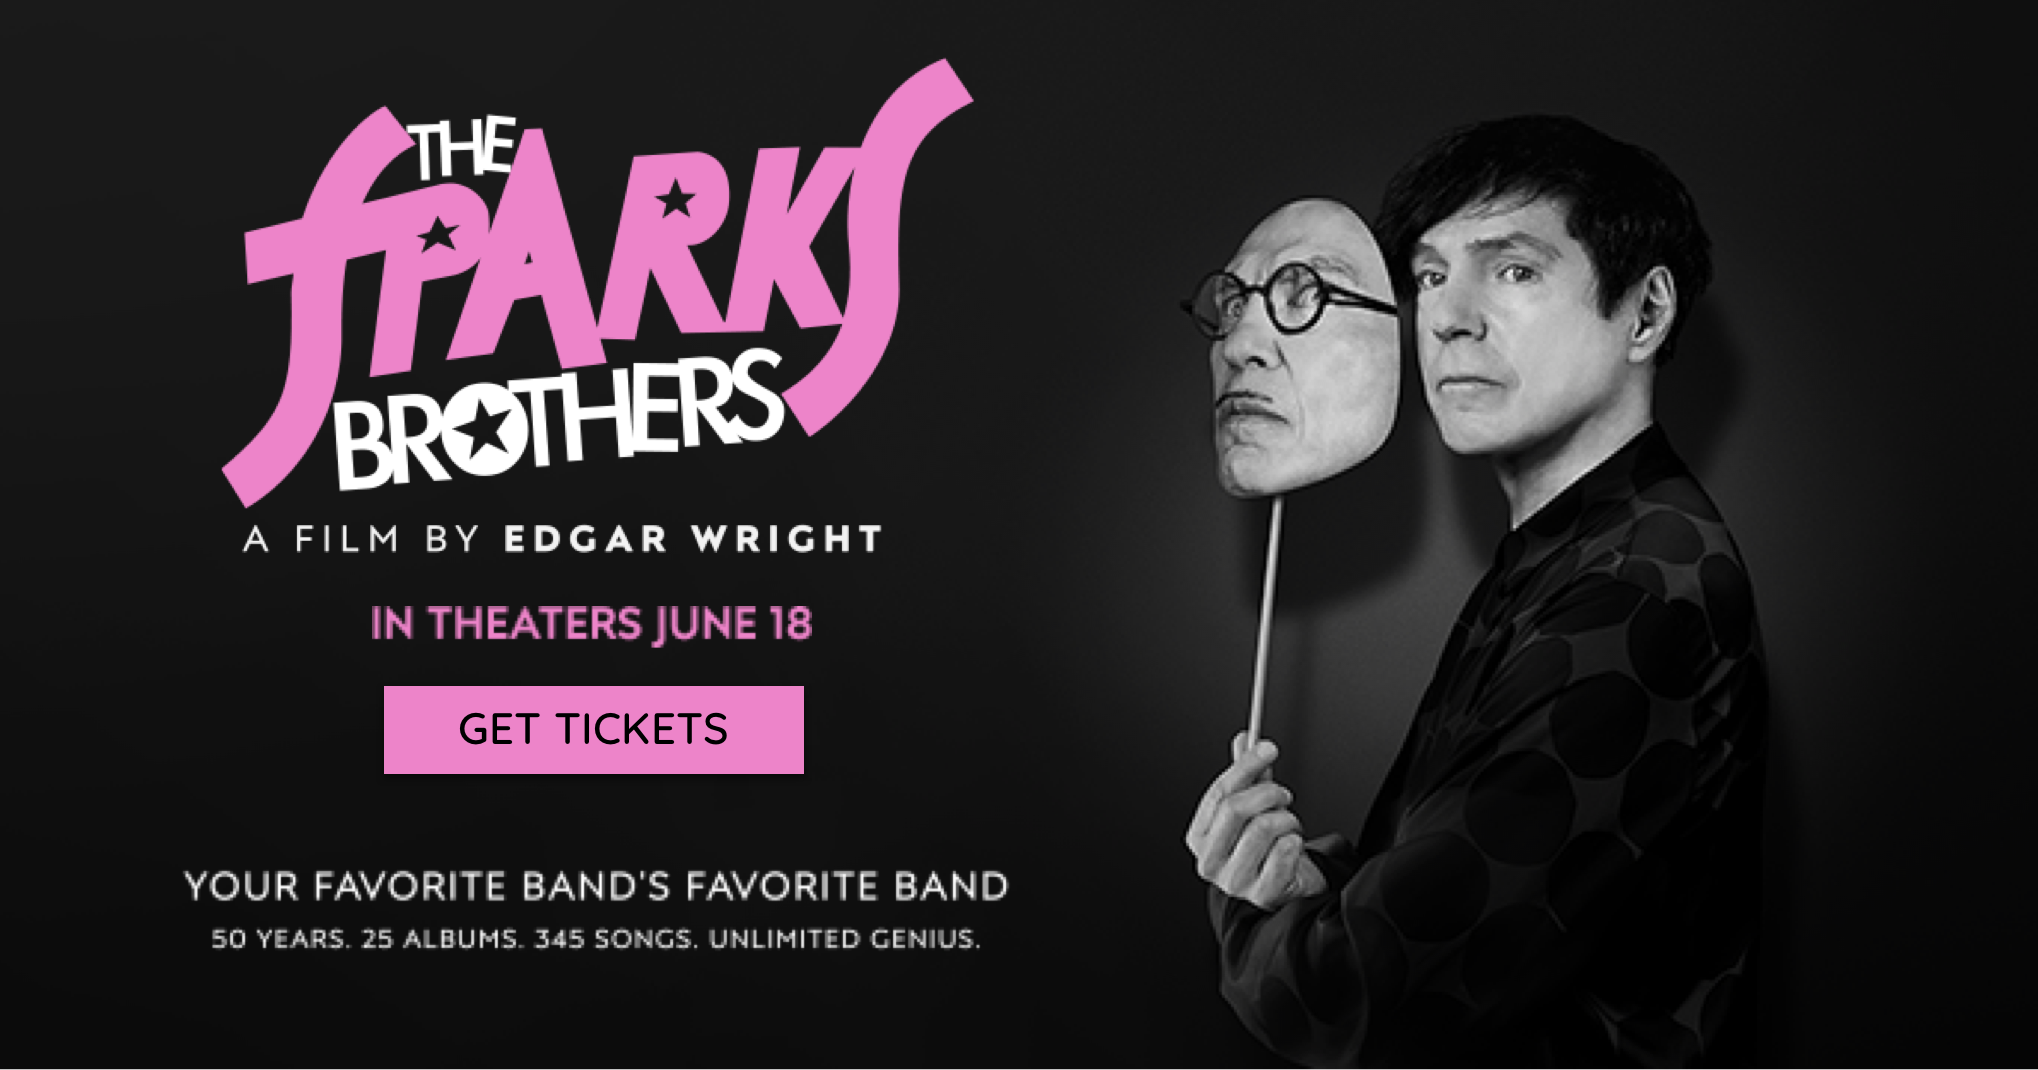 The Sparks Brothers | Official Website | June 18 2021